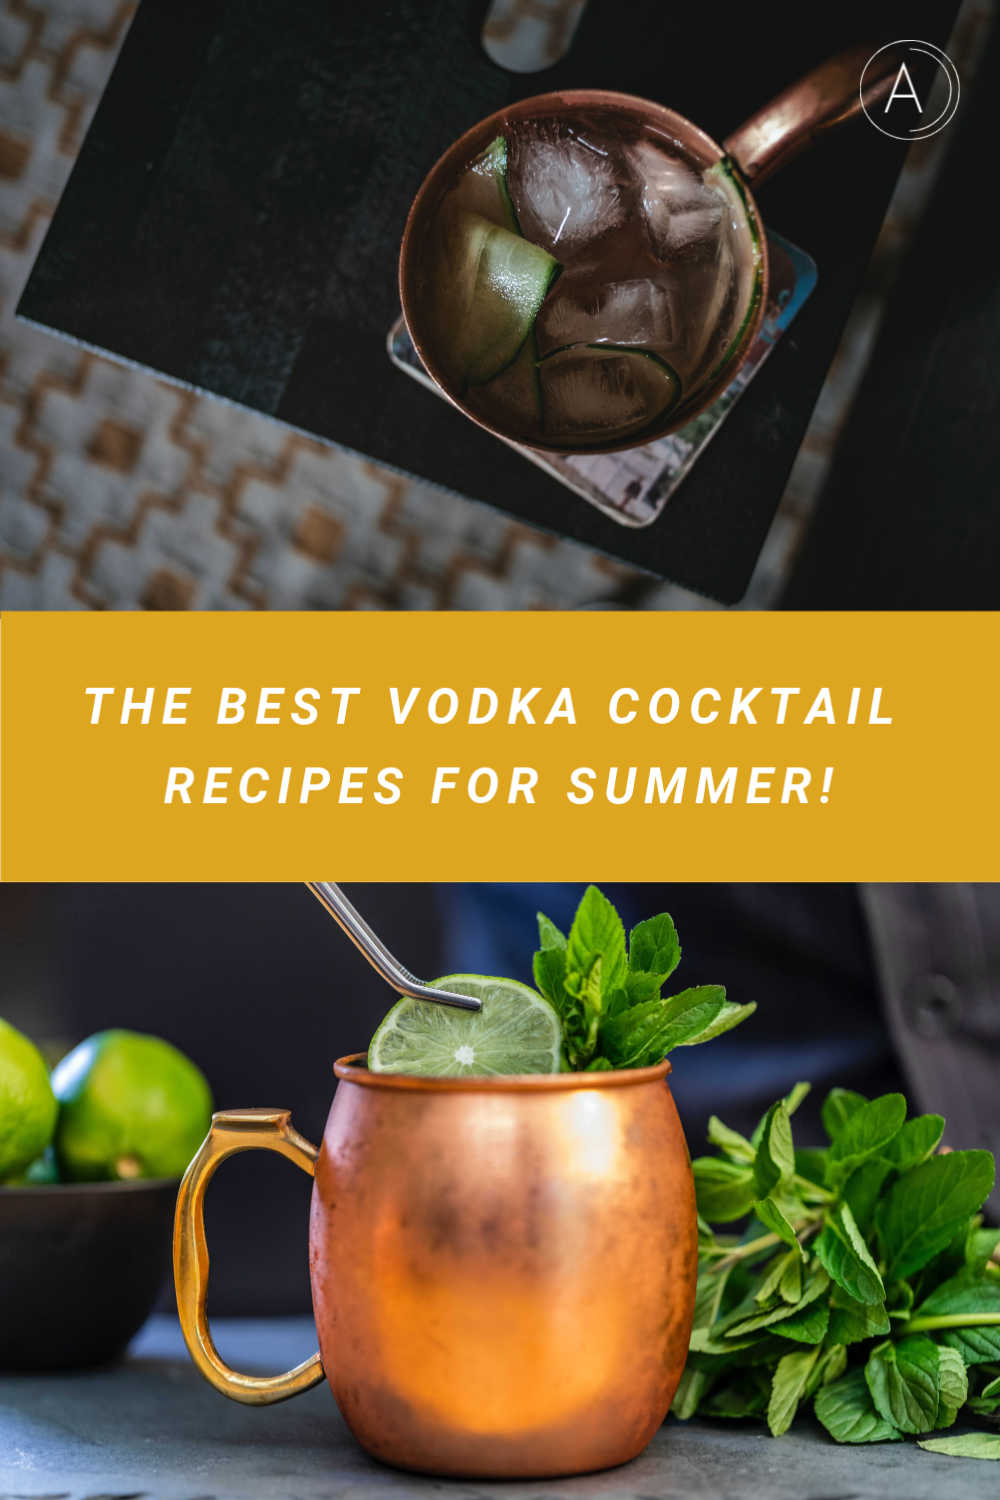 The Best Vodka Cocktail Recipes for Summer